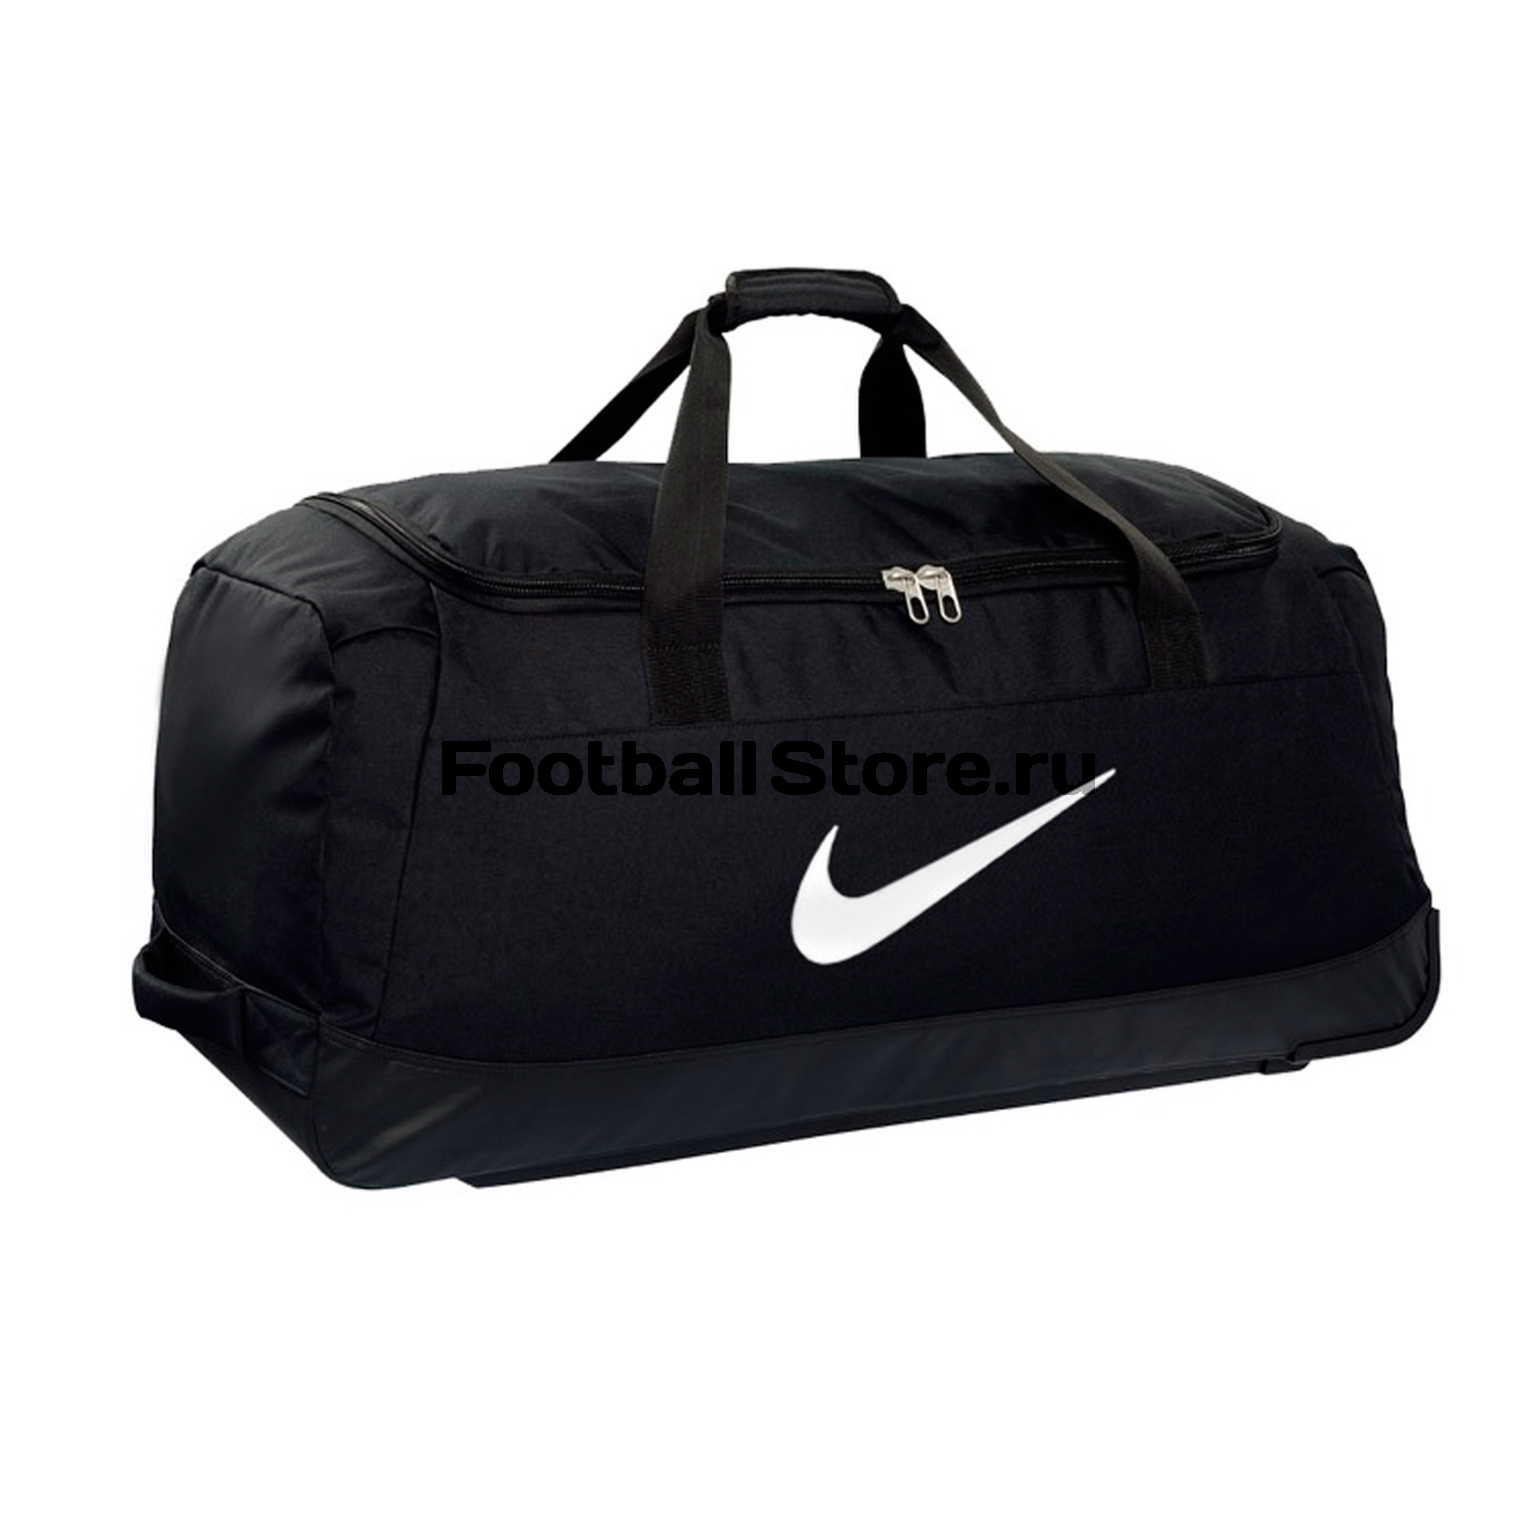 Сумки/Рюкзаки Nike Сумка Nike Club Team SWSH Roller Bag BA5199-010